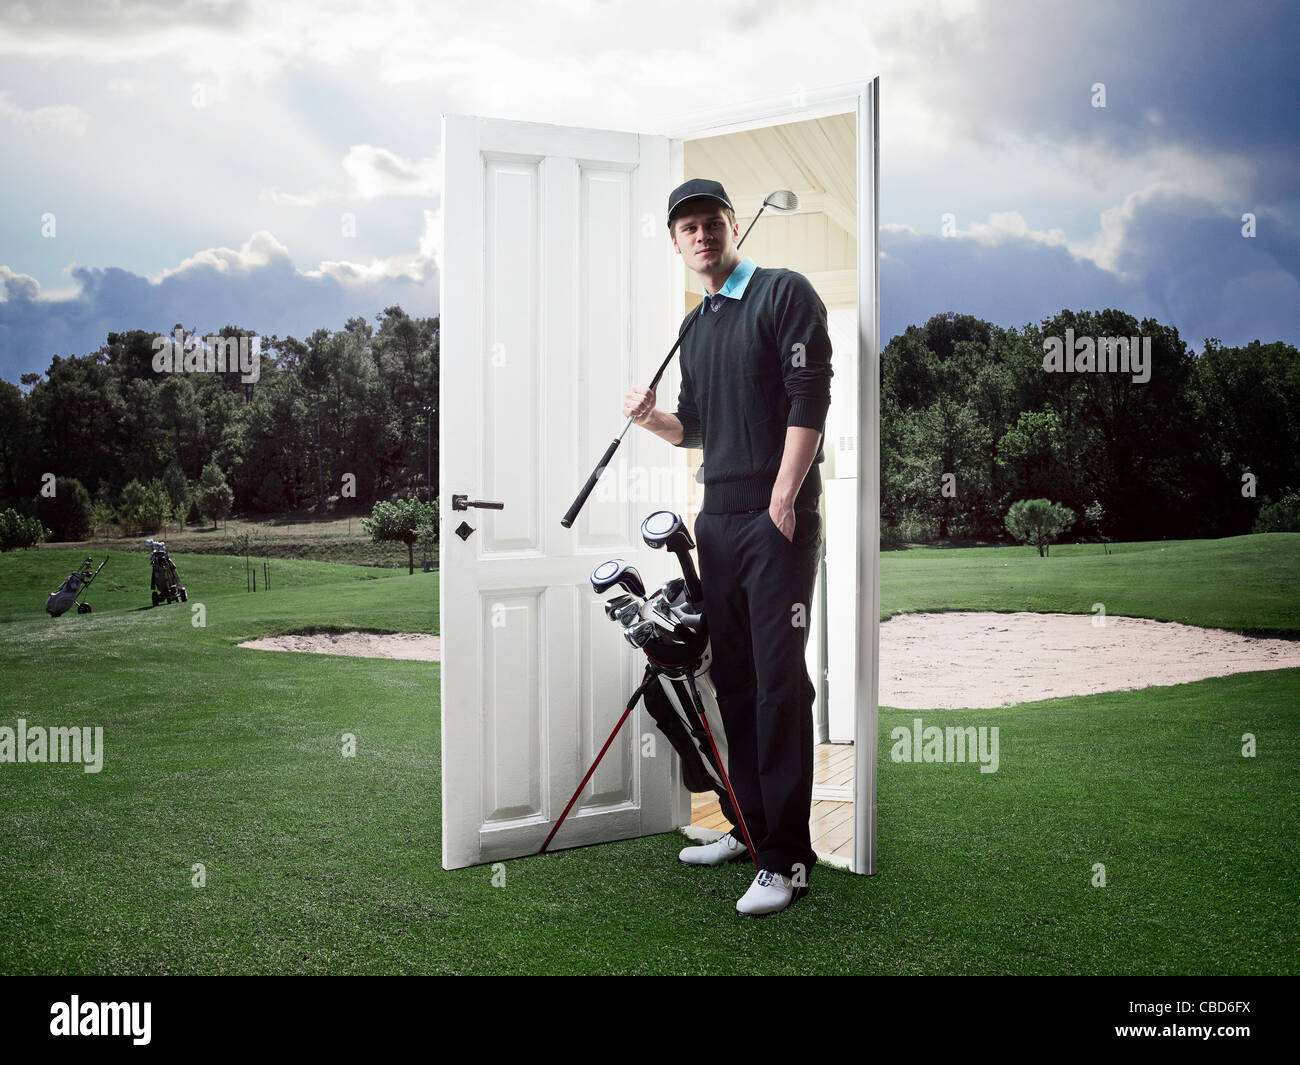 Man emerging from door on golf course - Stock Image